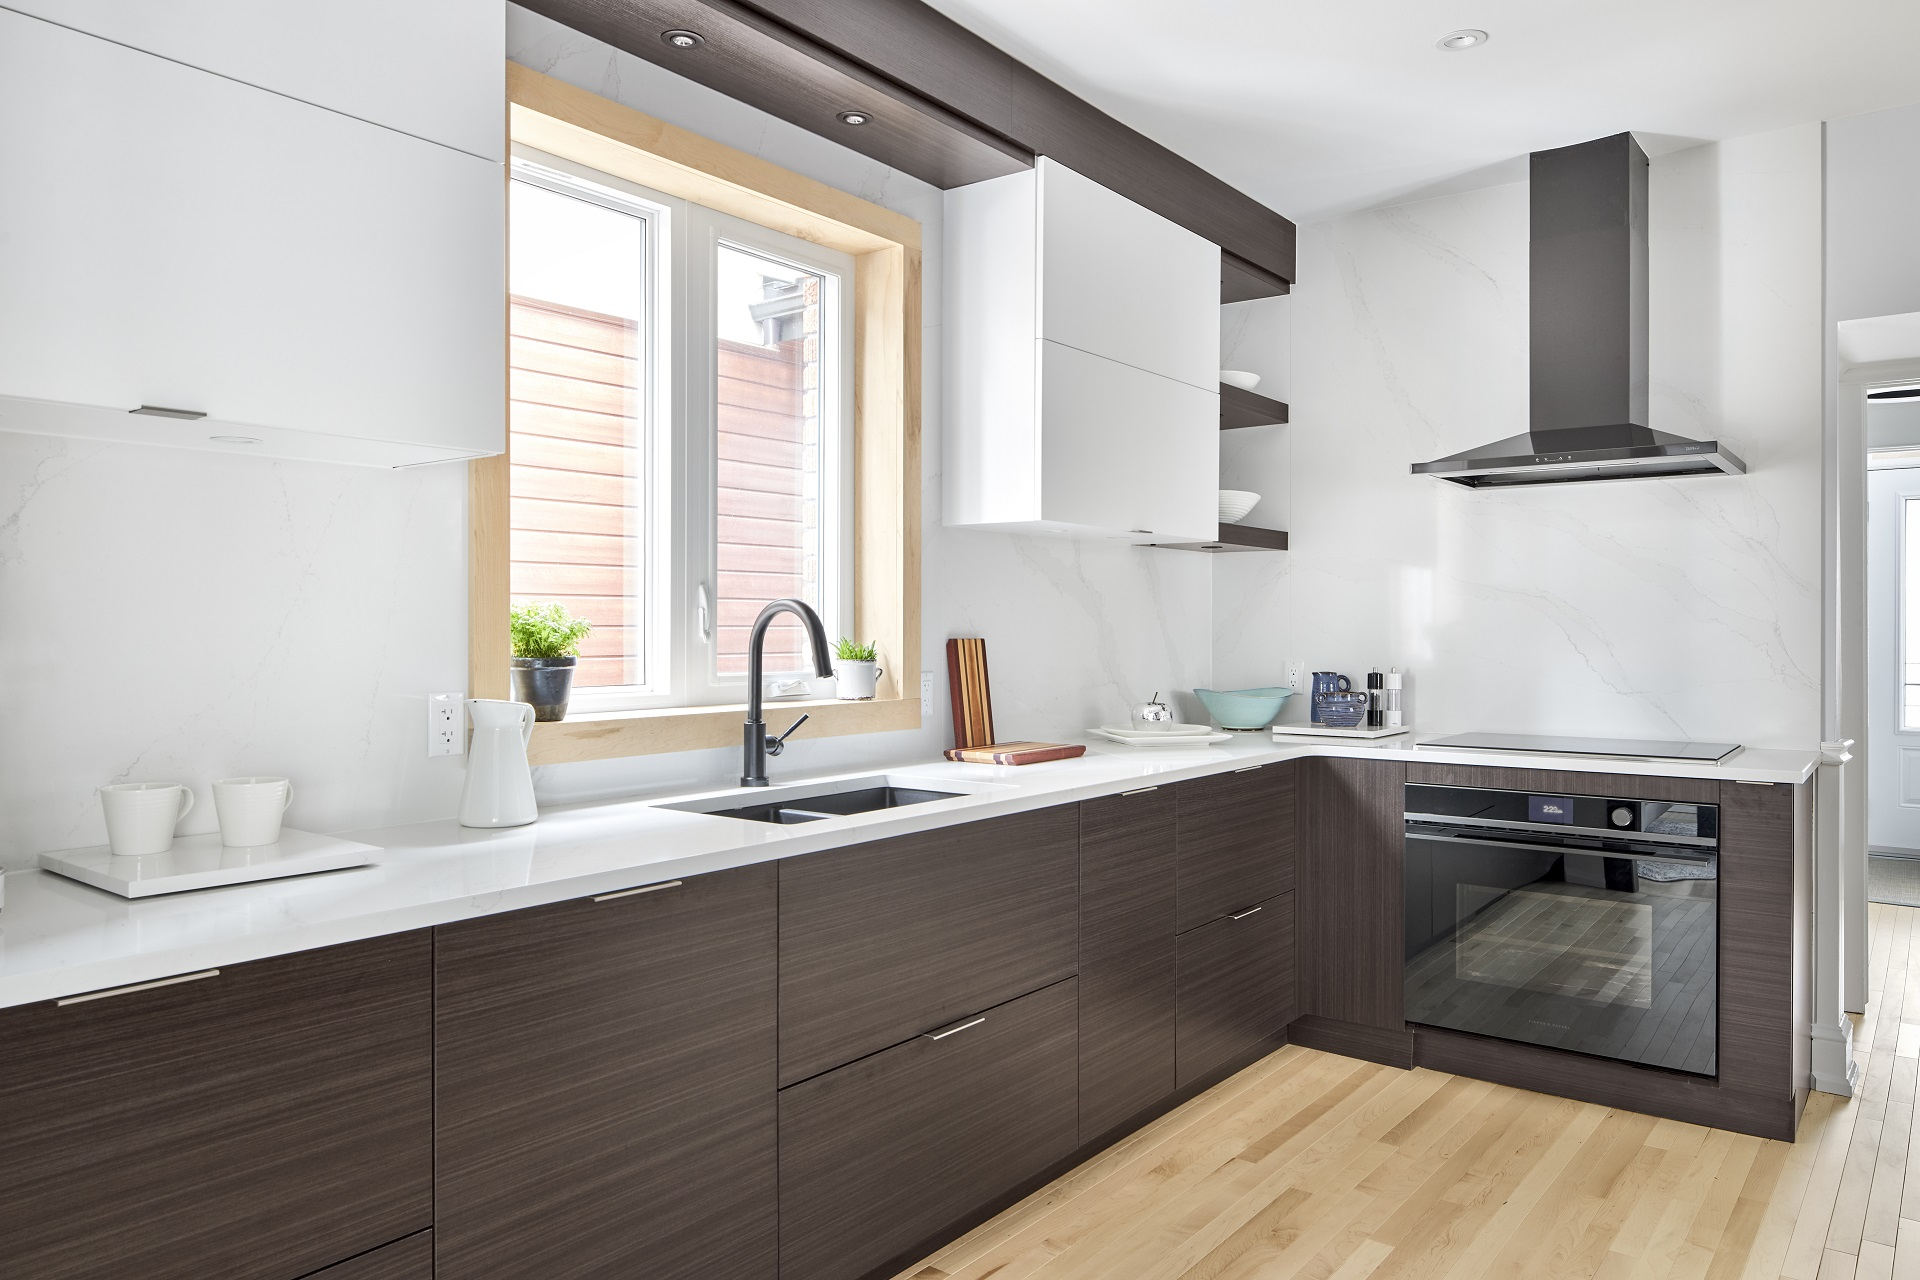 A kitchen with slab-style doors